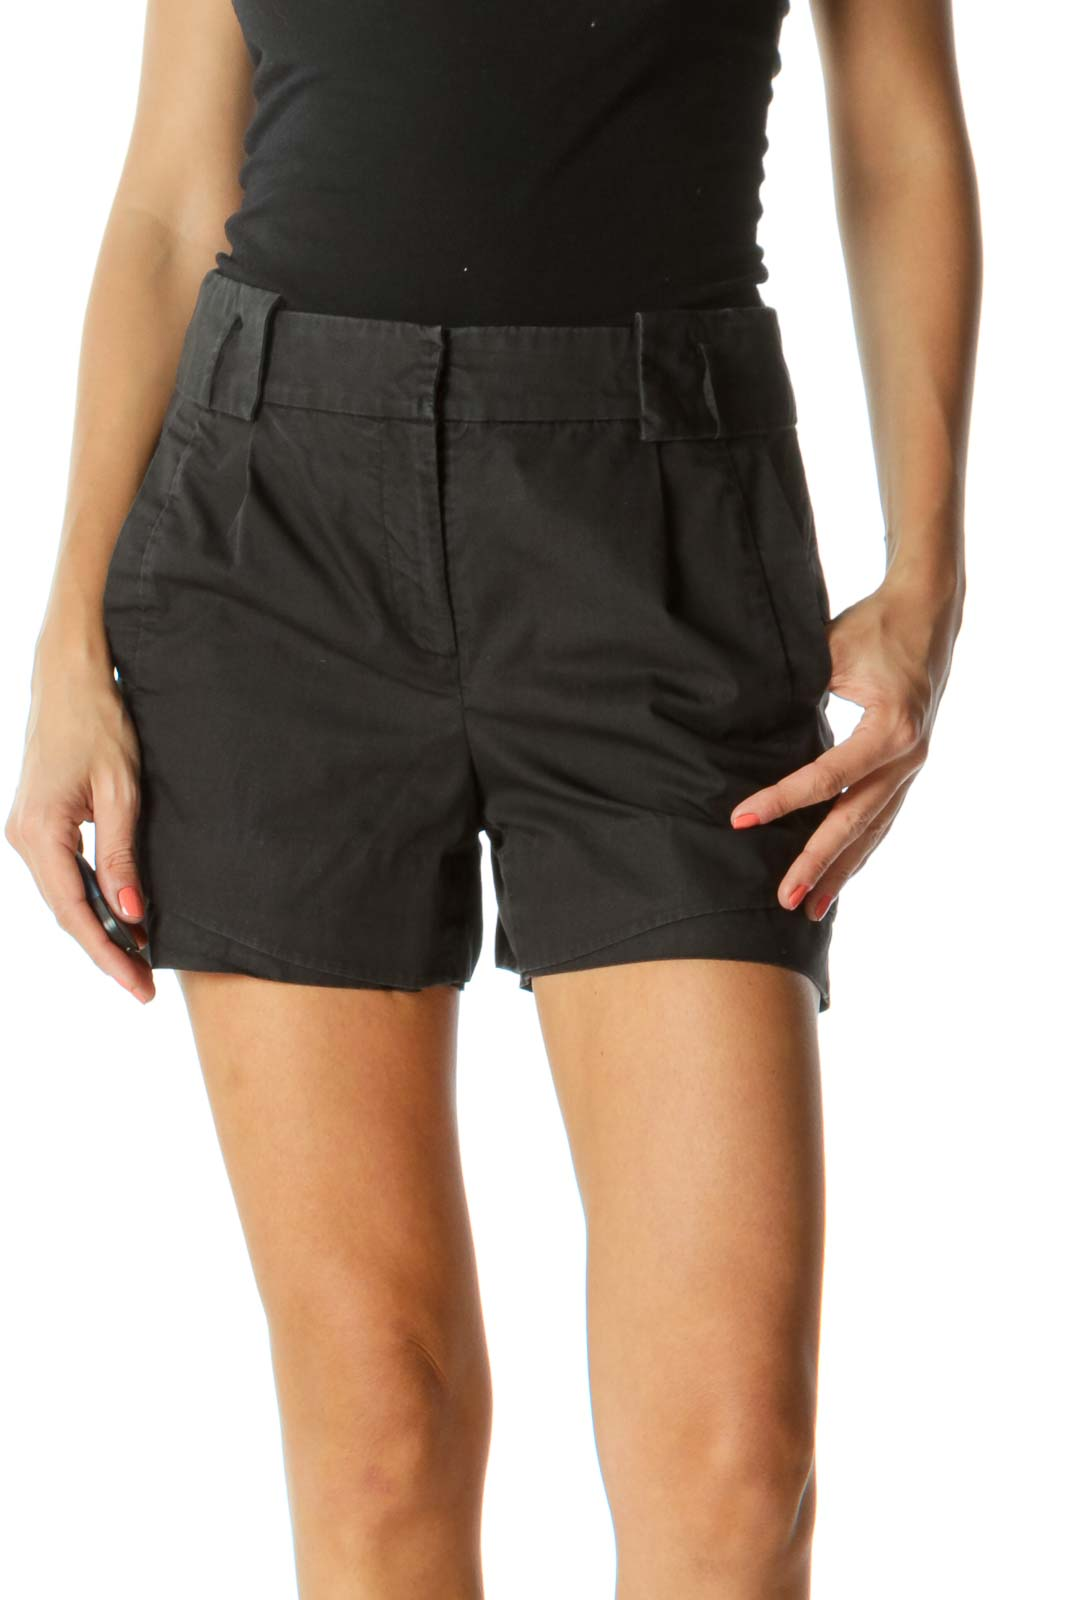 Black Pleating Detail on Front and Back Shorts